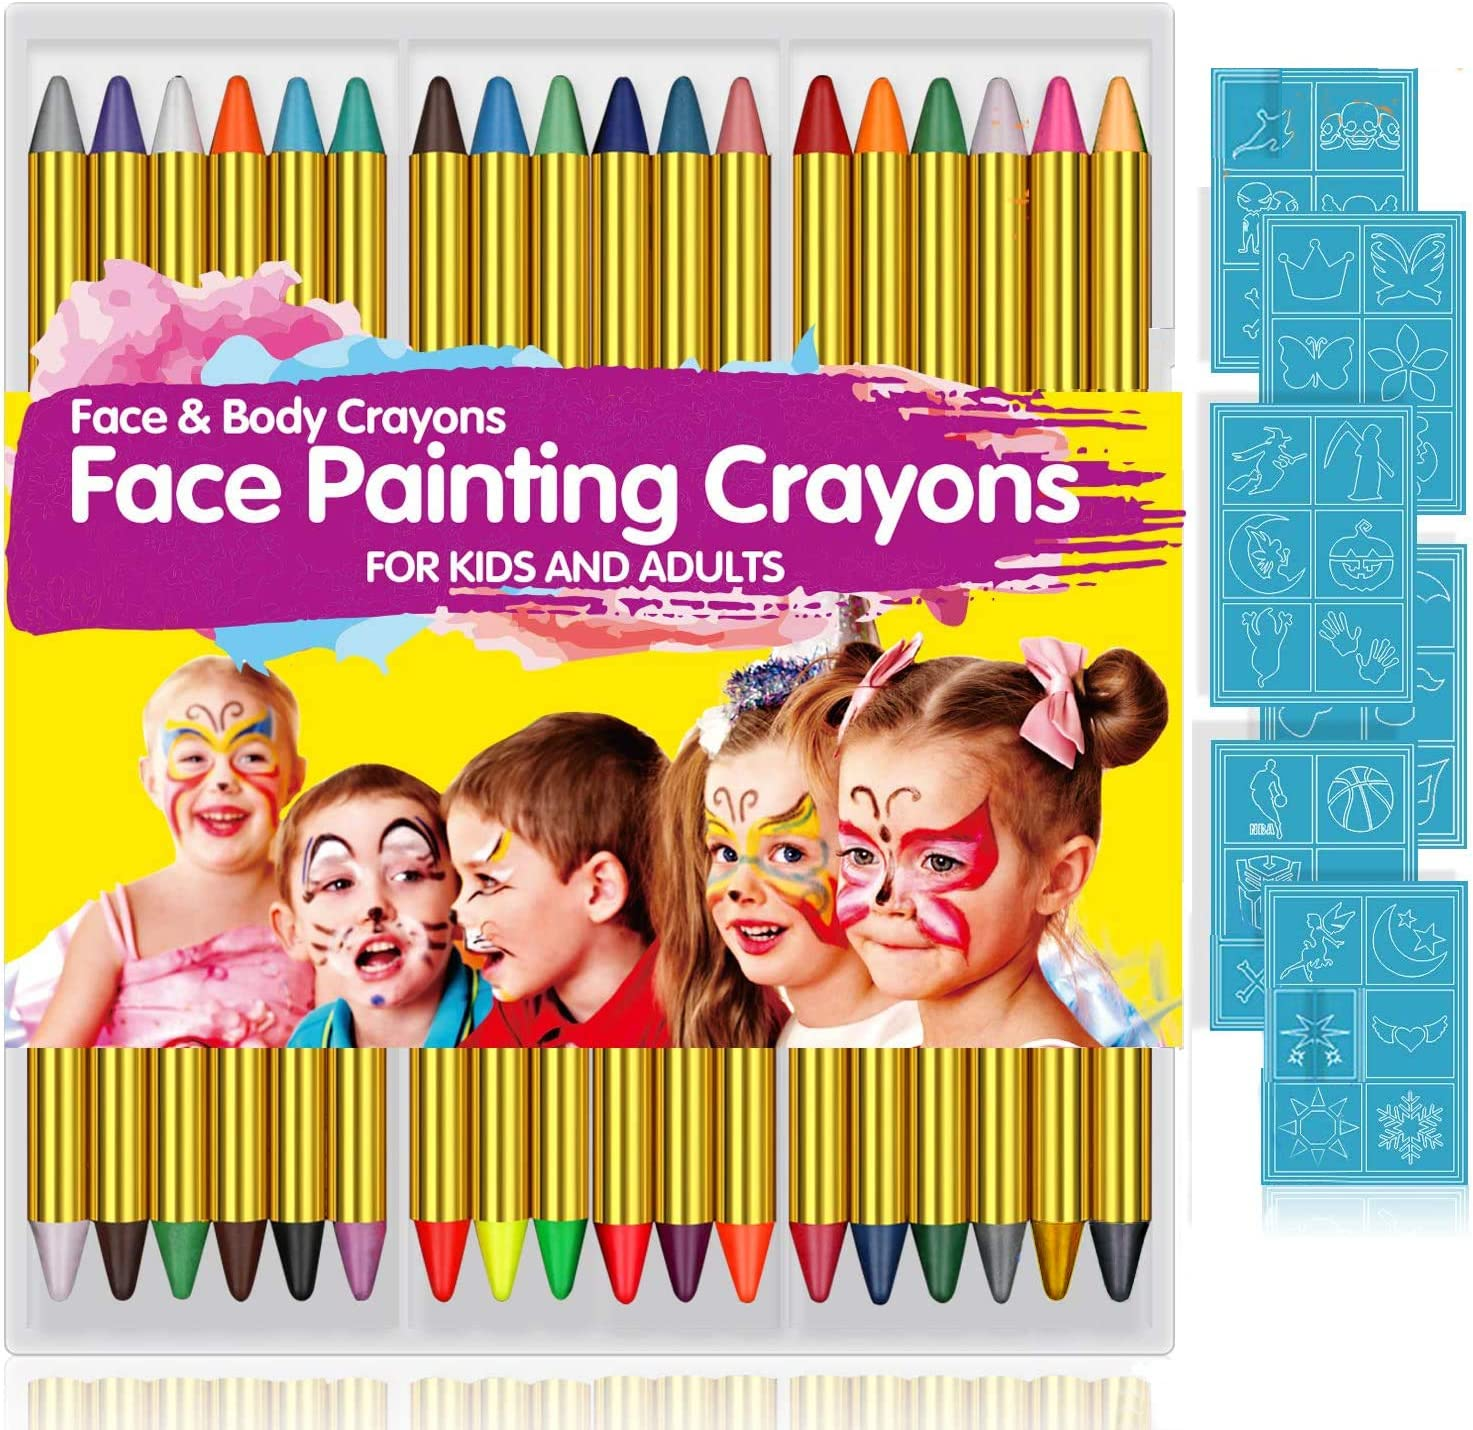 Amazon Com Face Paint Crayons For Kids 36 Makeup Sticks 36 Stencils Professtional Face Painting Kit For Halloween Or Birthday Party 6 Fluorescent 6 Metallic 24 Classic Colors Safe For Sensitive Skin